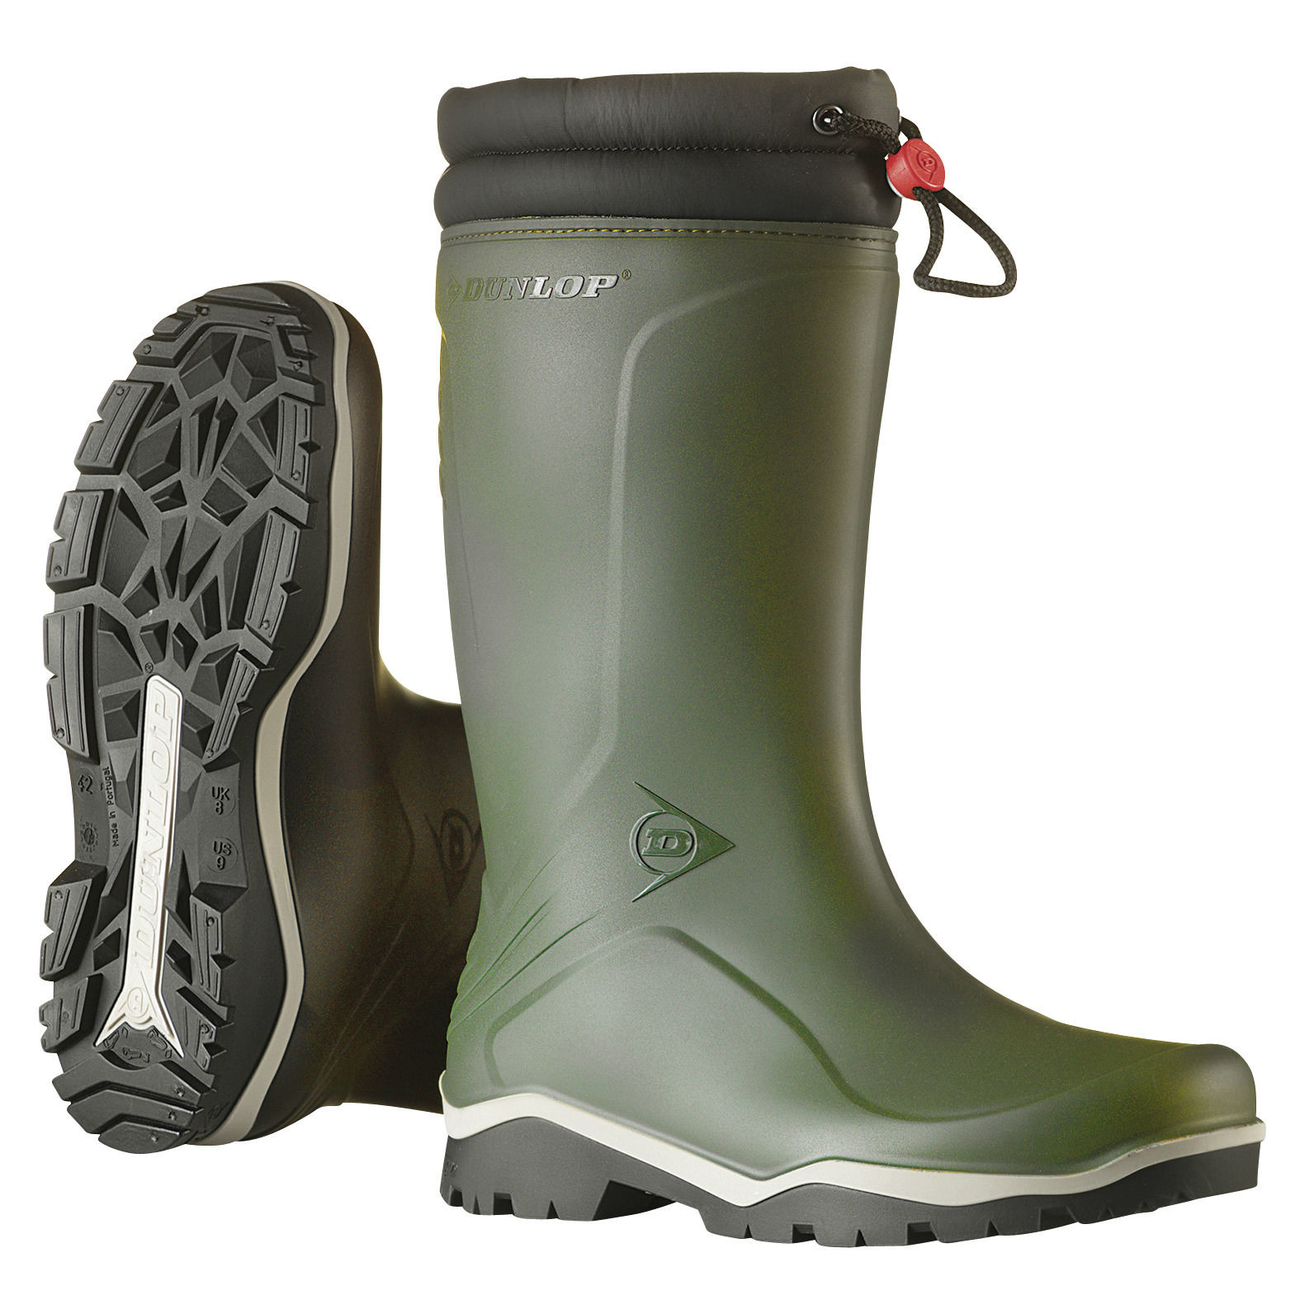 Thermostiefel Dunlop Blizzard Gr. 42